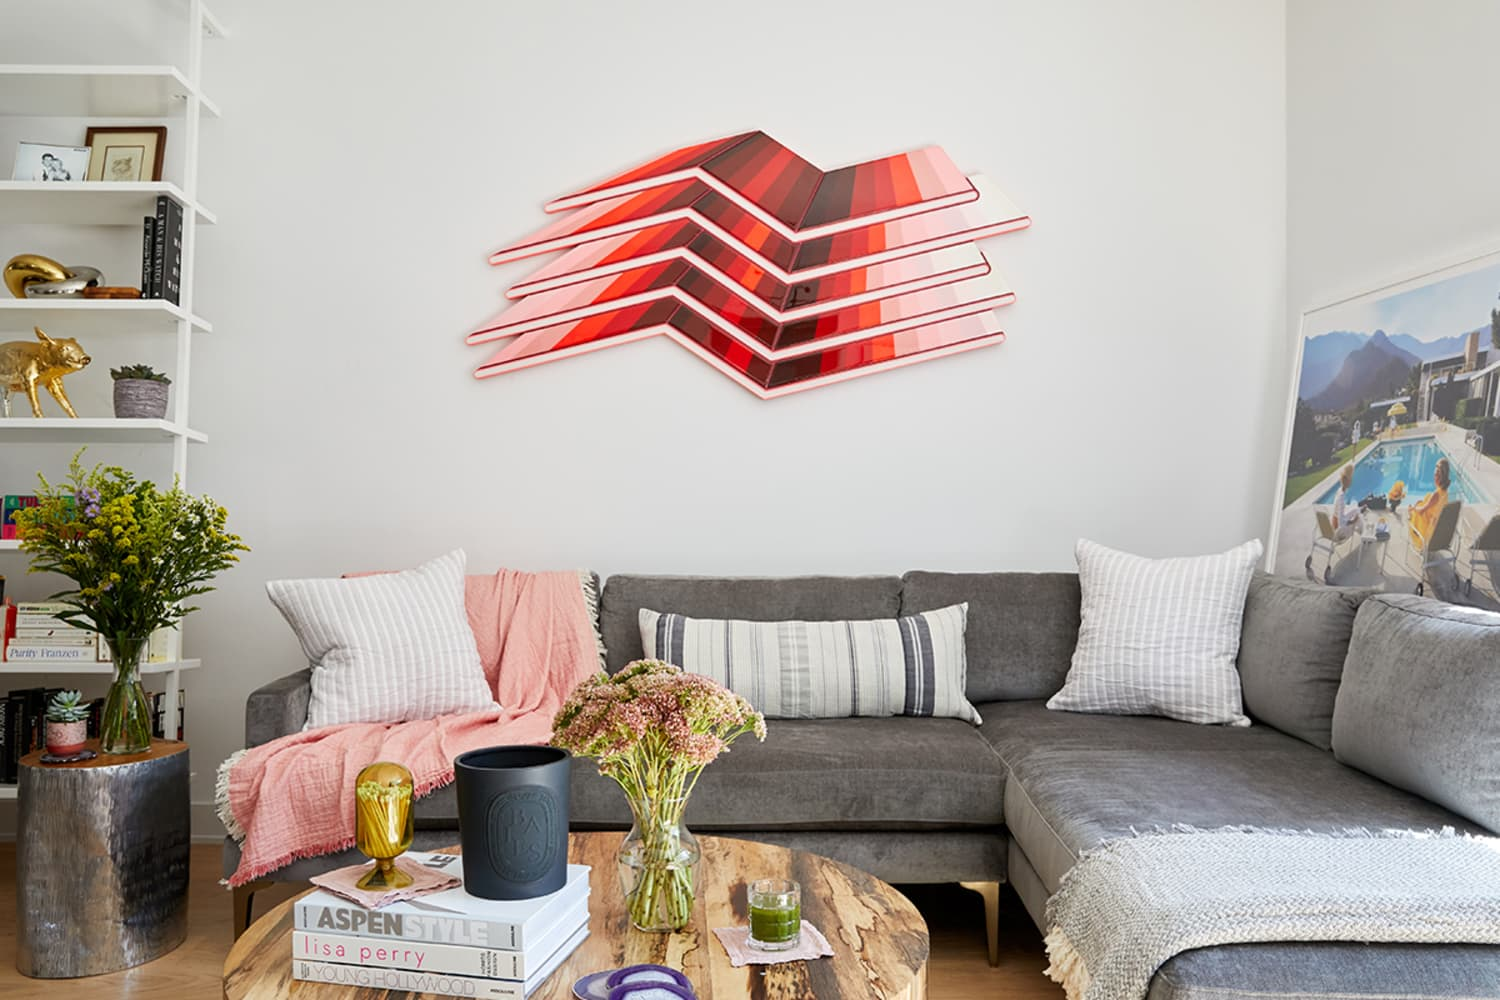 Is Renting the New Buying When It Comes to Furniture? This NYC Influencer's Colorful Living Room Just Might Change Your Answer